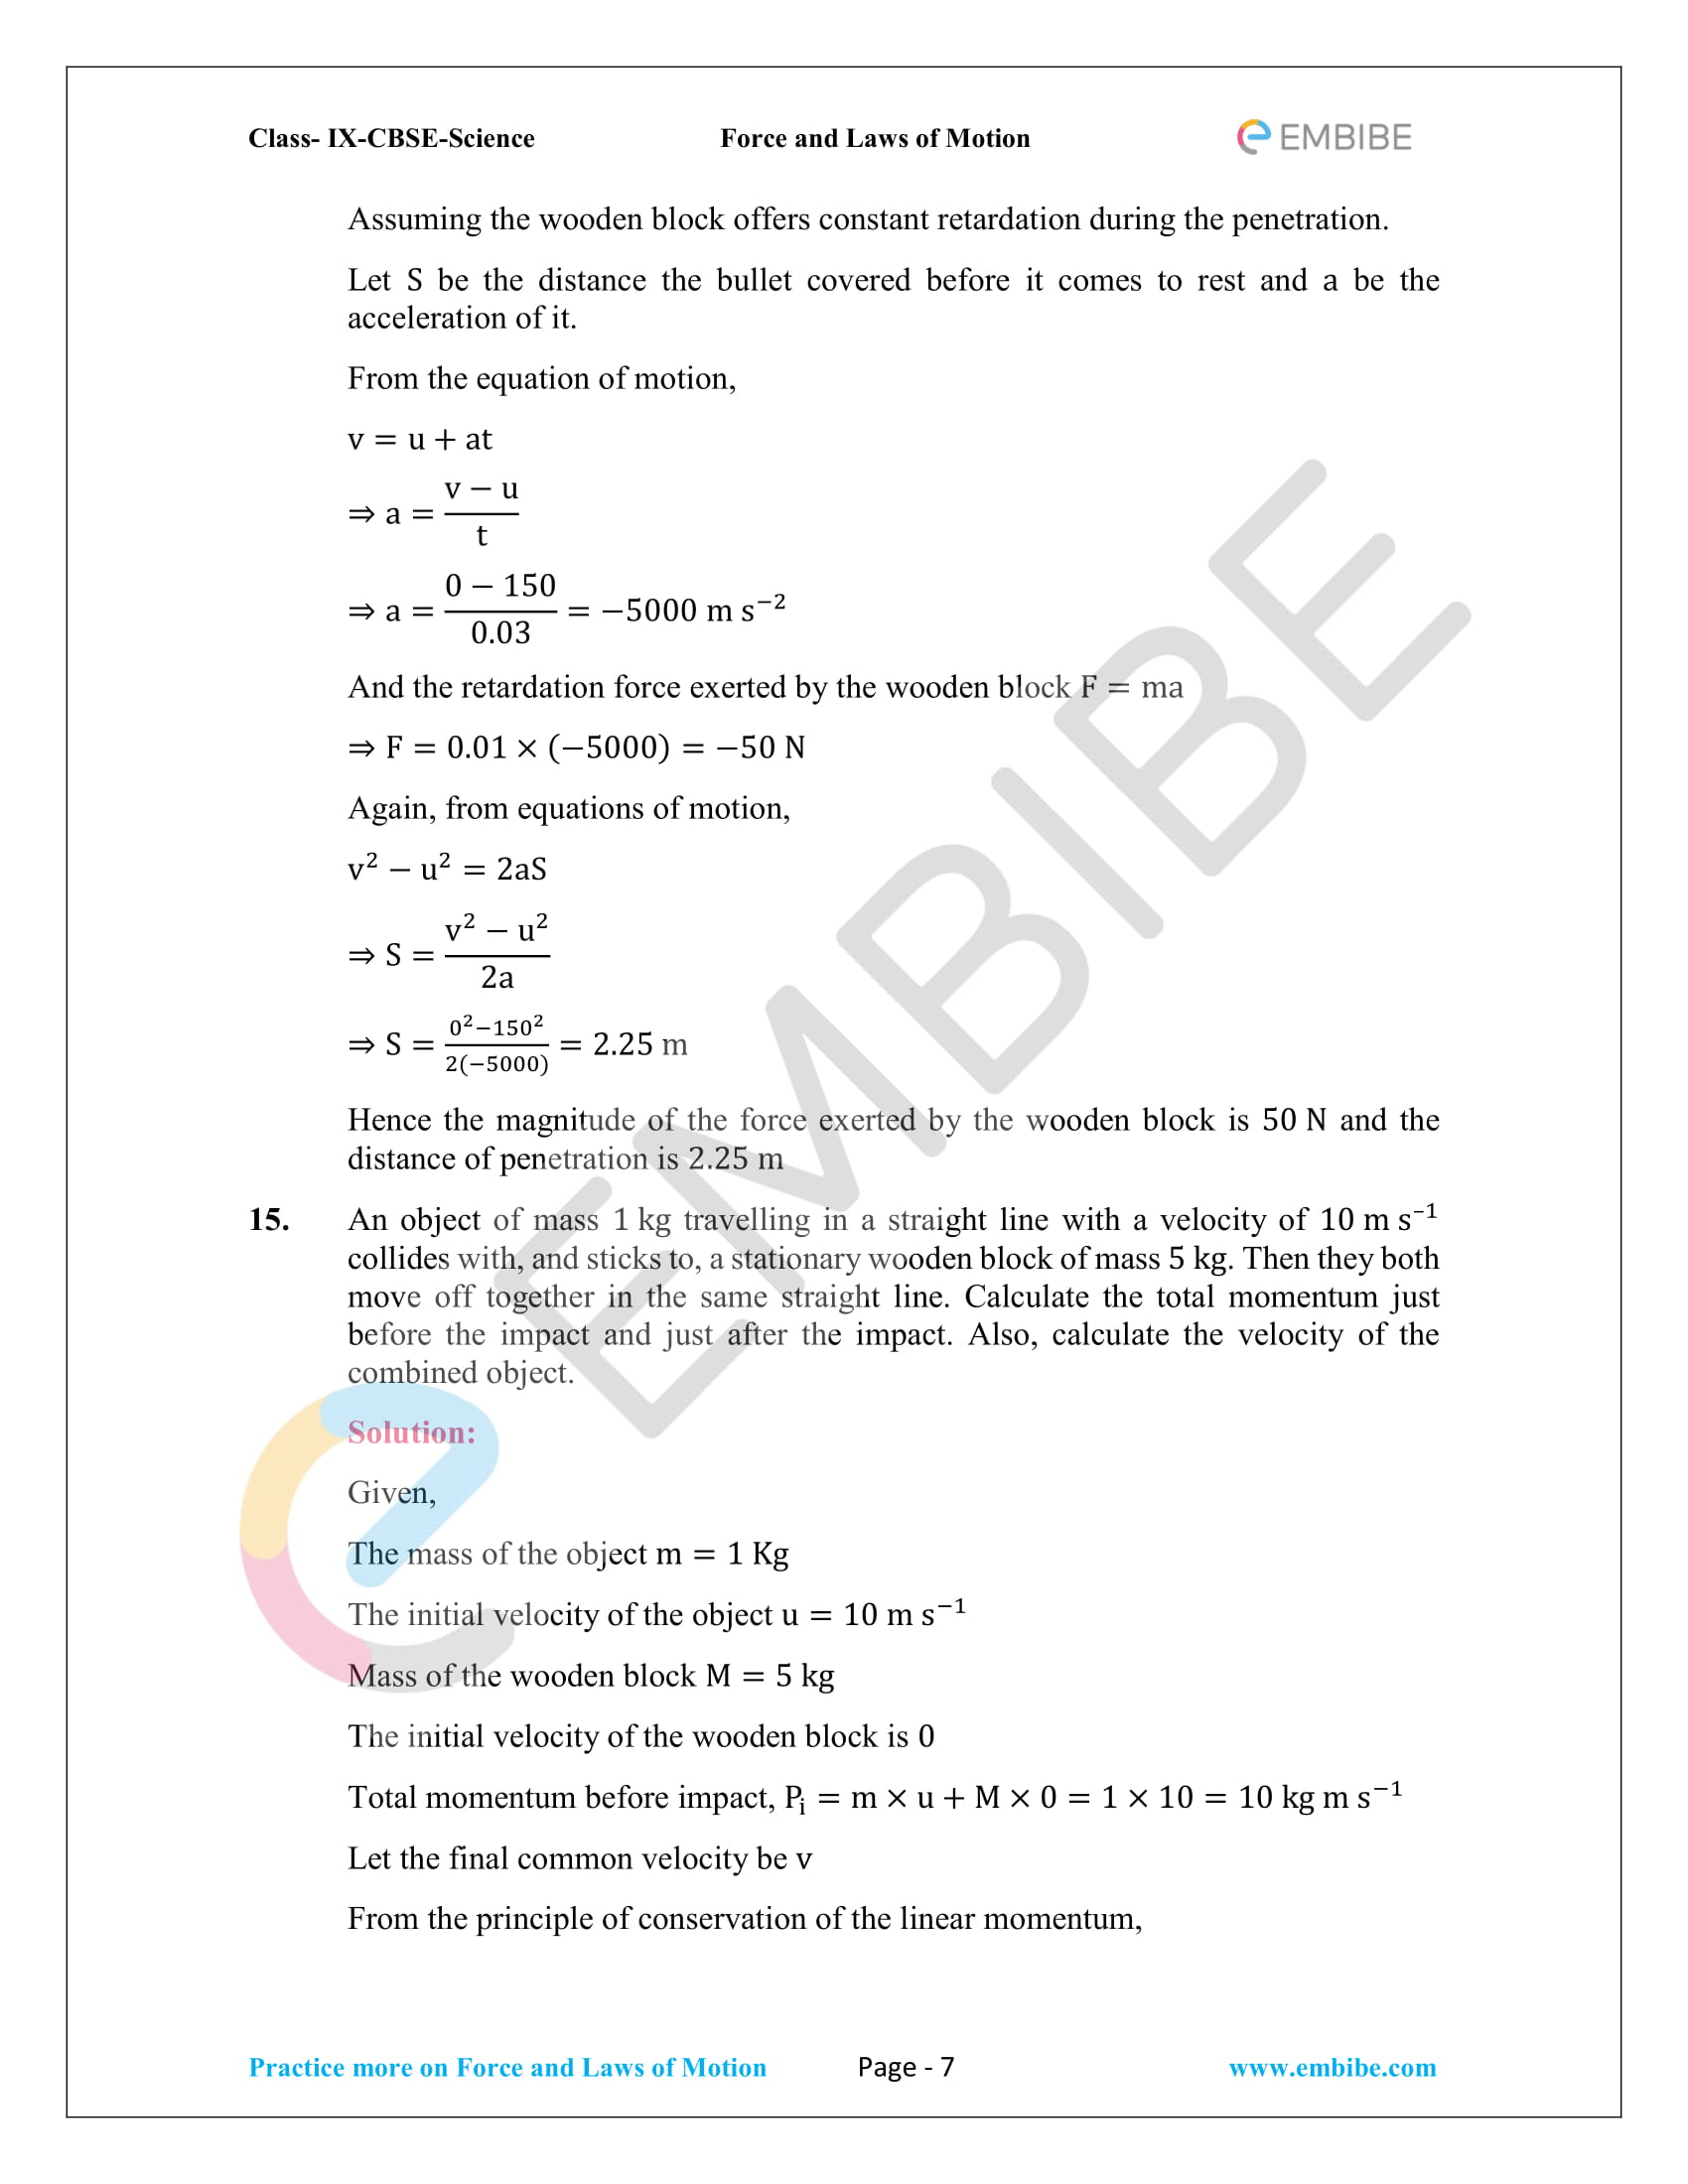 CBSE NCERT Solutions For Class 9 Science Chapter 9 – Force And Laws Of Motion - 7